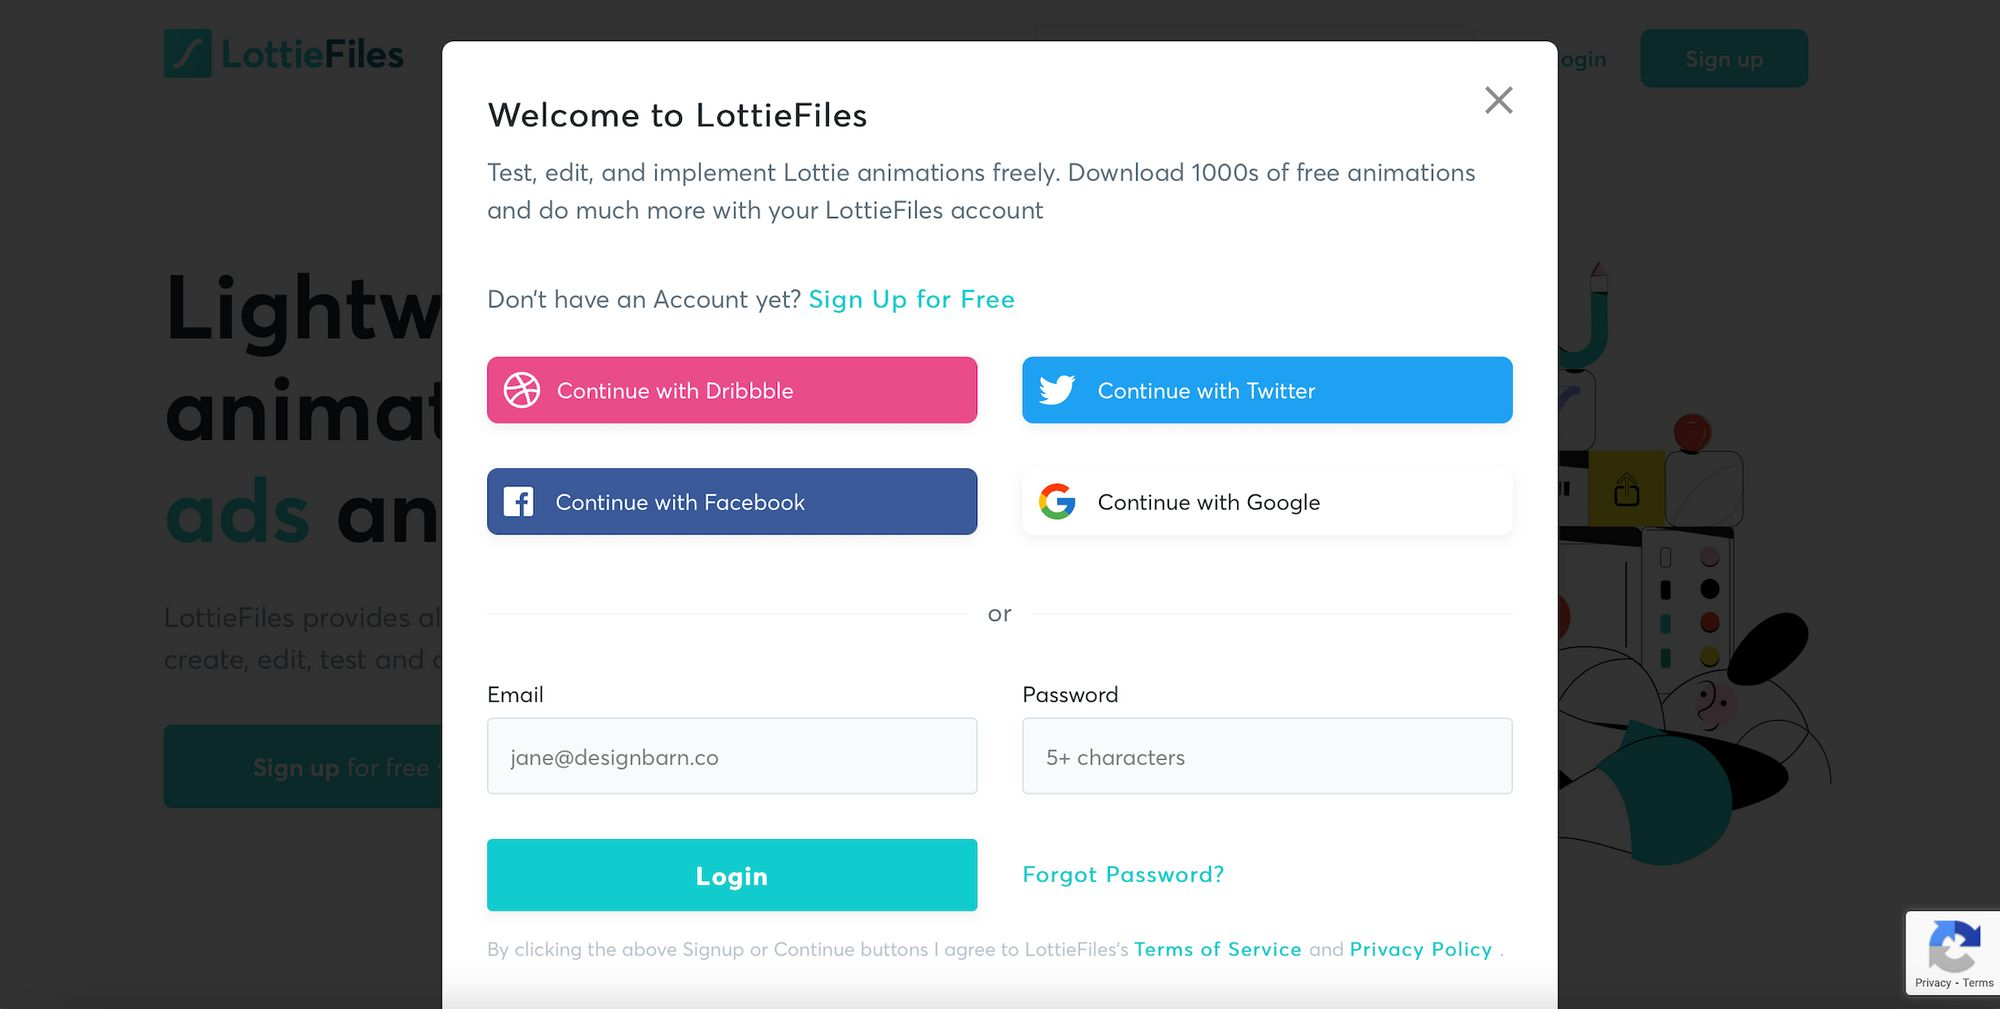 Sing In or Sign Up for LottieFiles